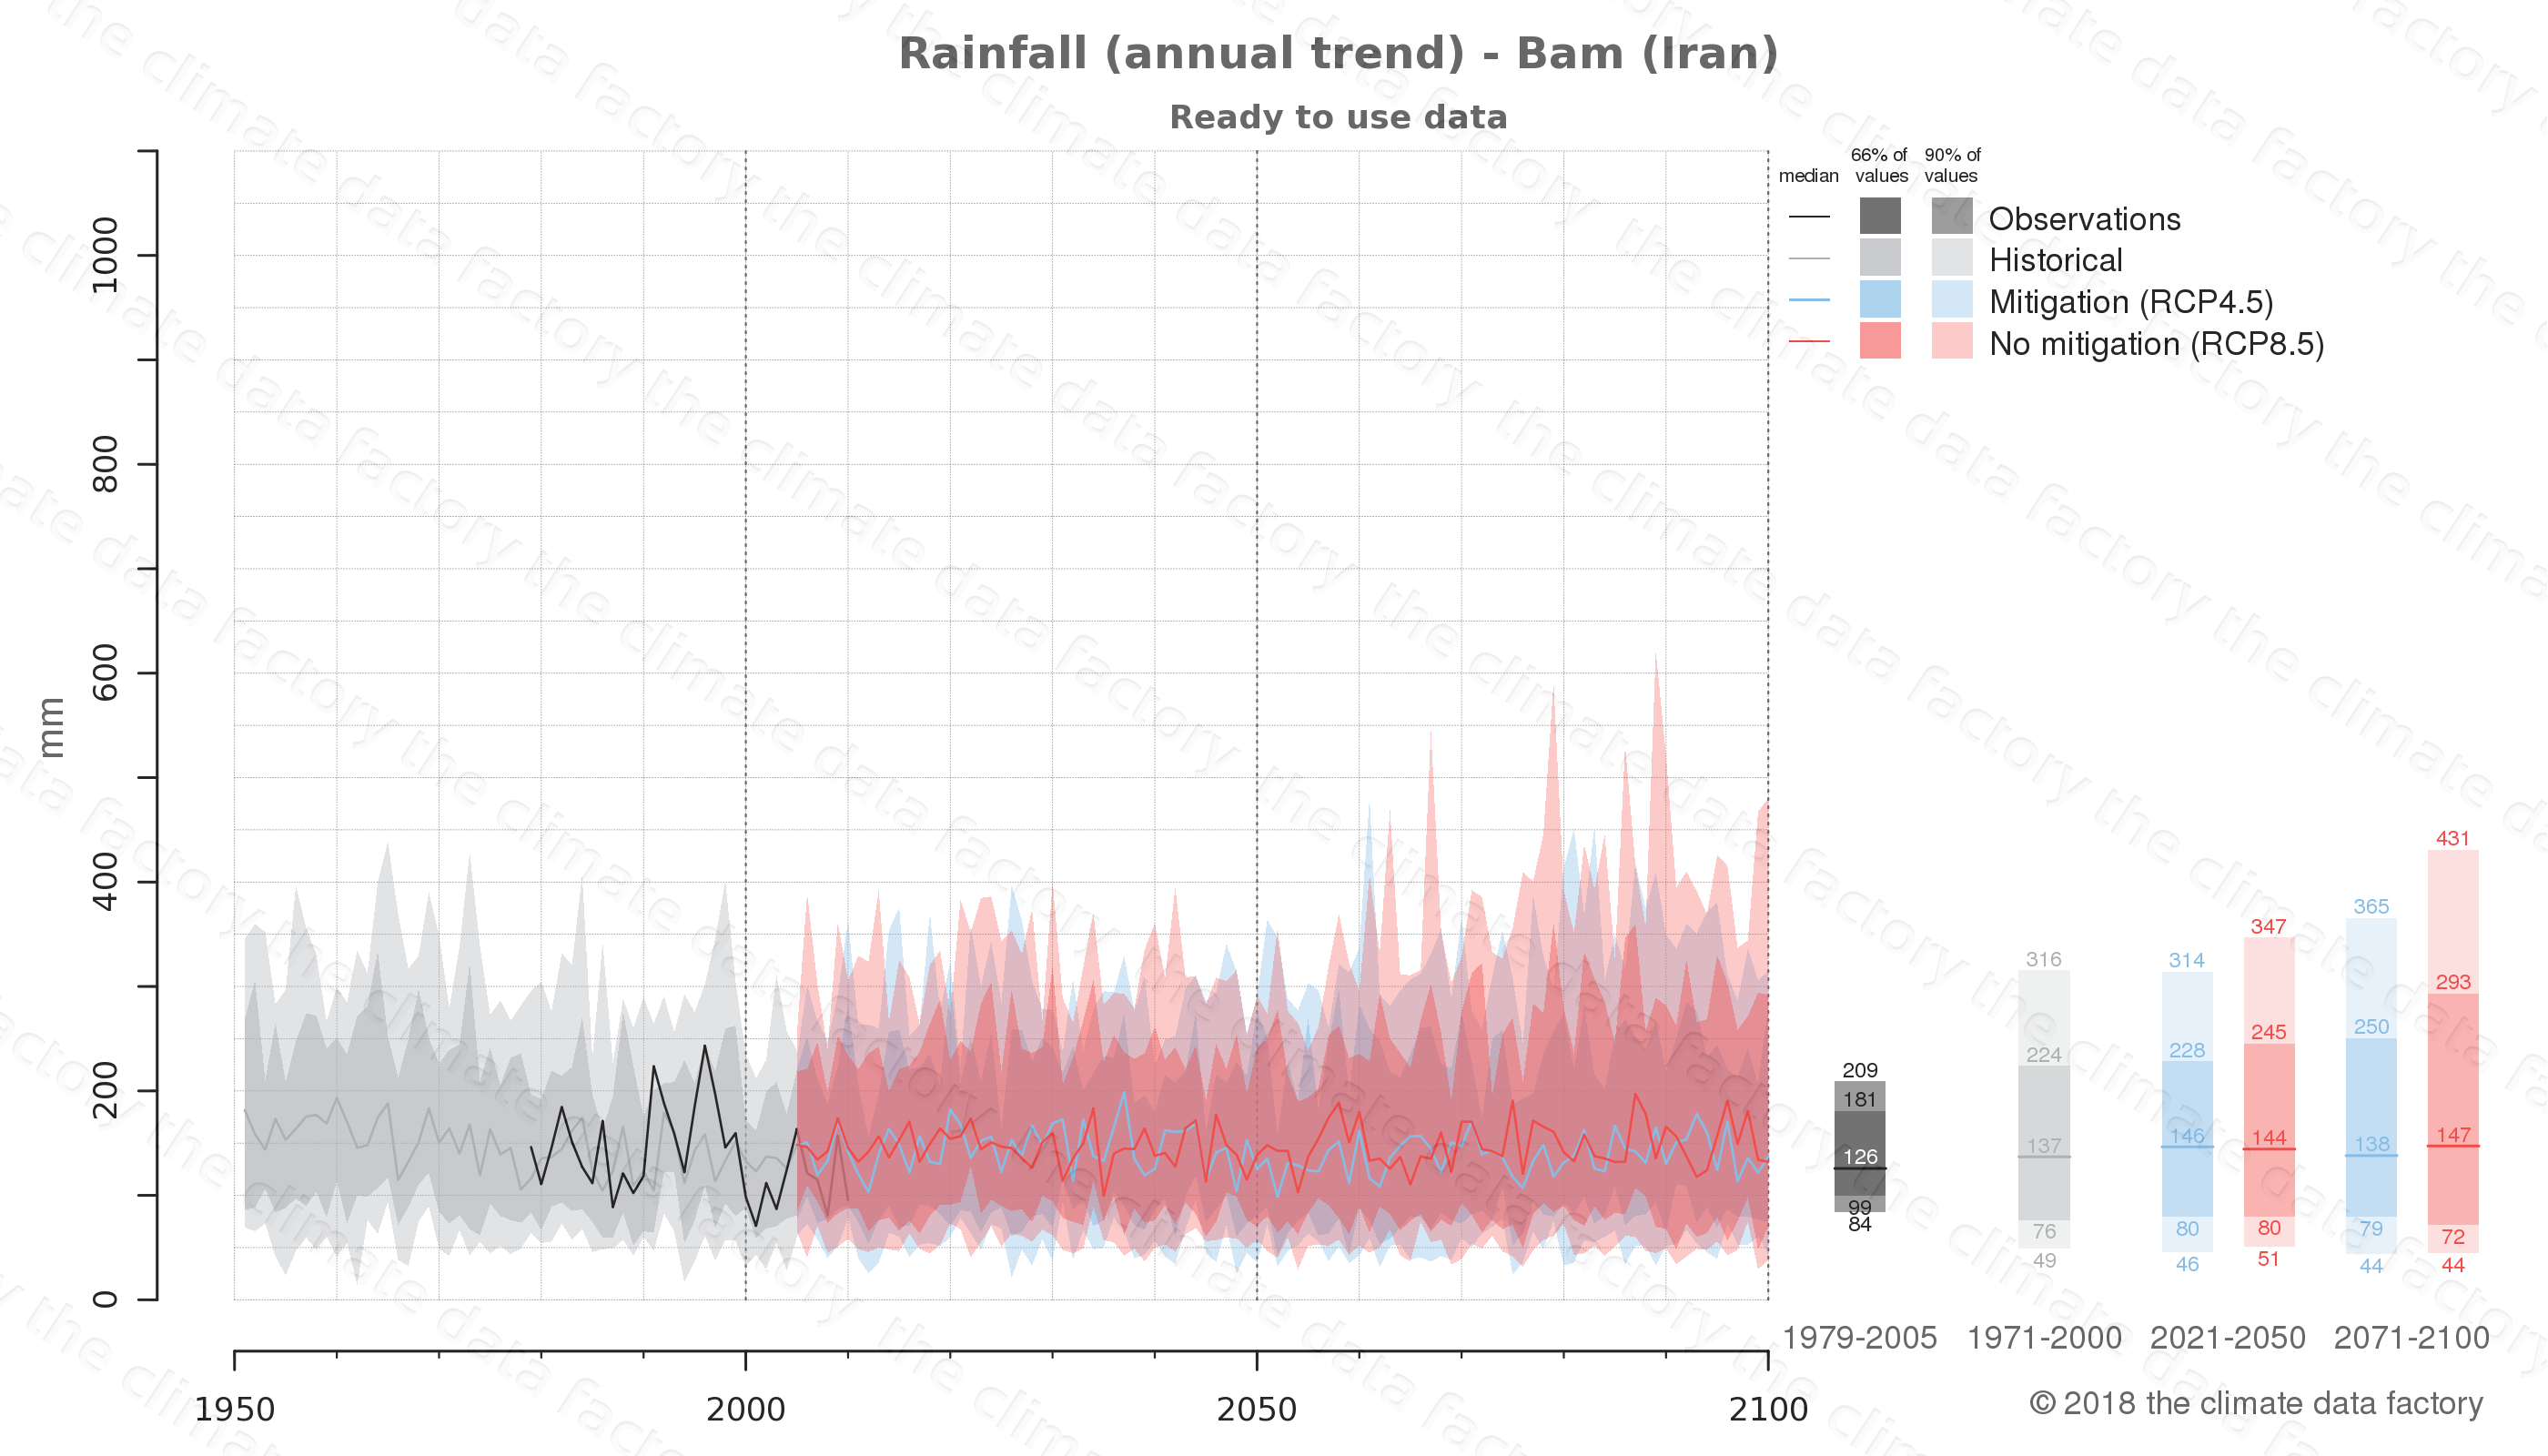 climate change data policy adaptation climate graph city data rainfall bam iran